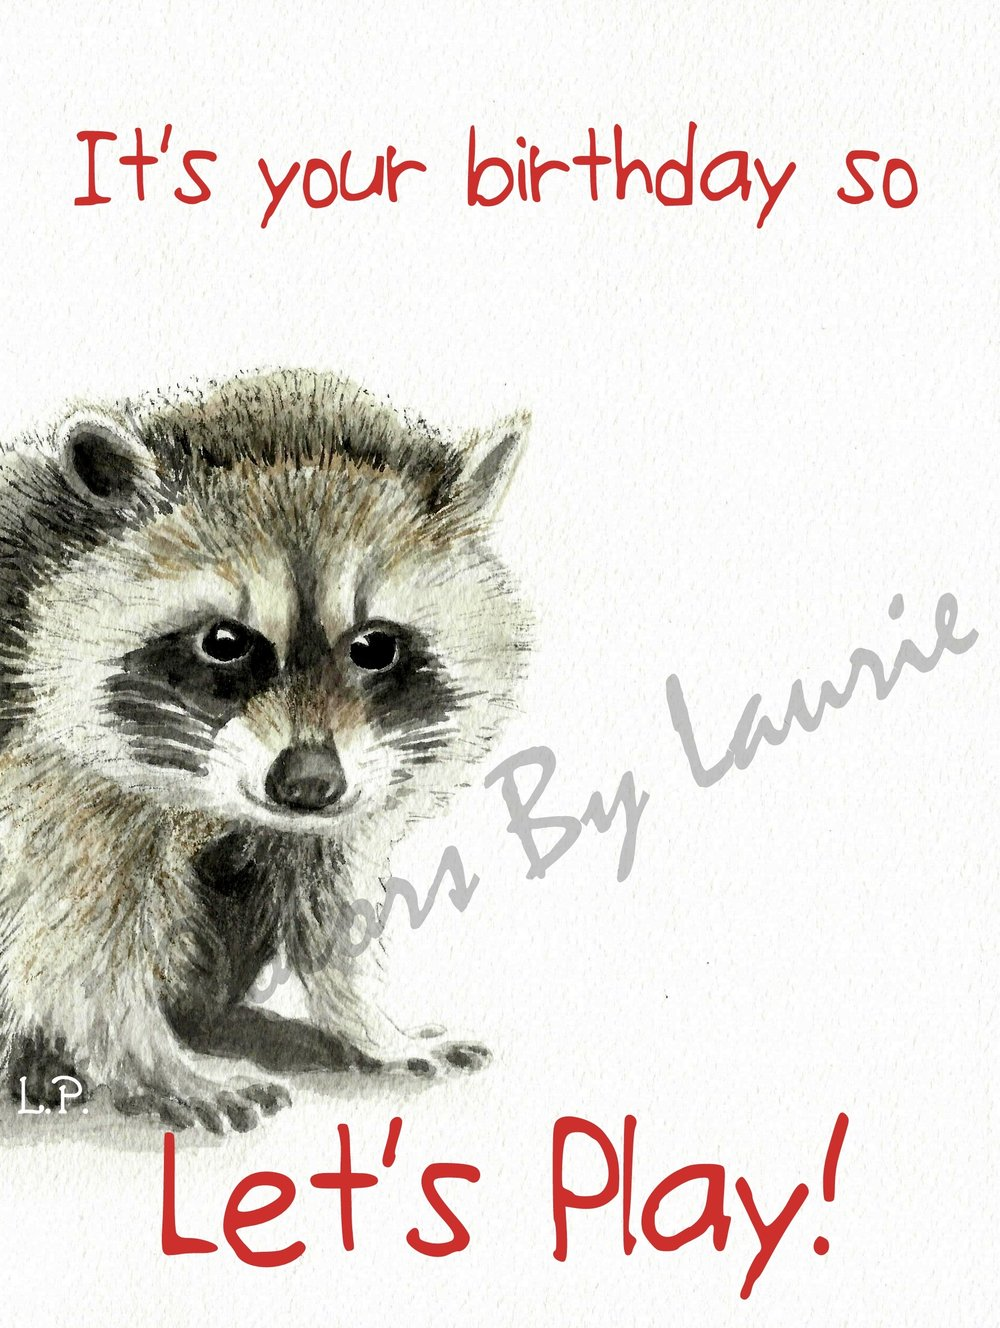 RACCOON    INSIDE:  Wishing you lots of Birthday love. Thanking God for you…